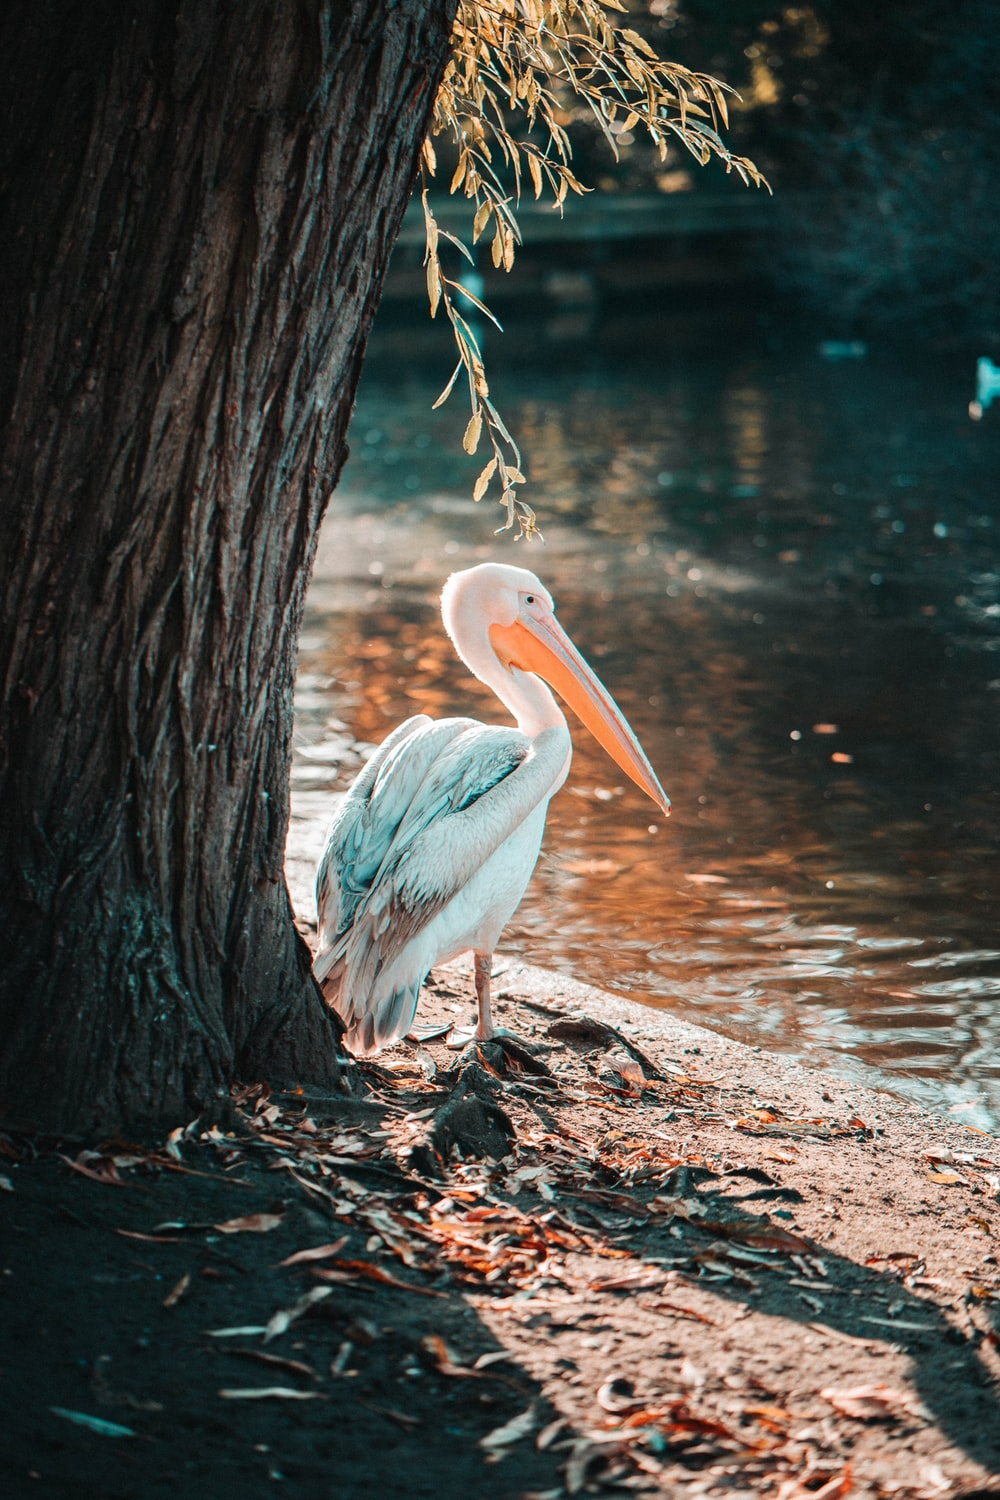 white pelican on brown tree trunk near body of water during daytime